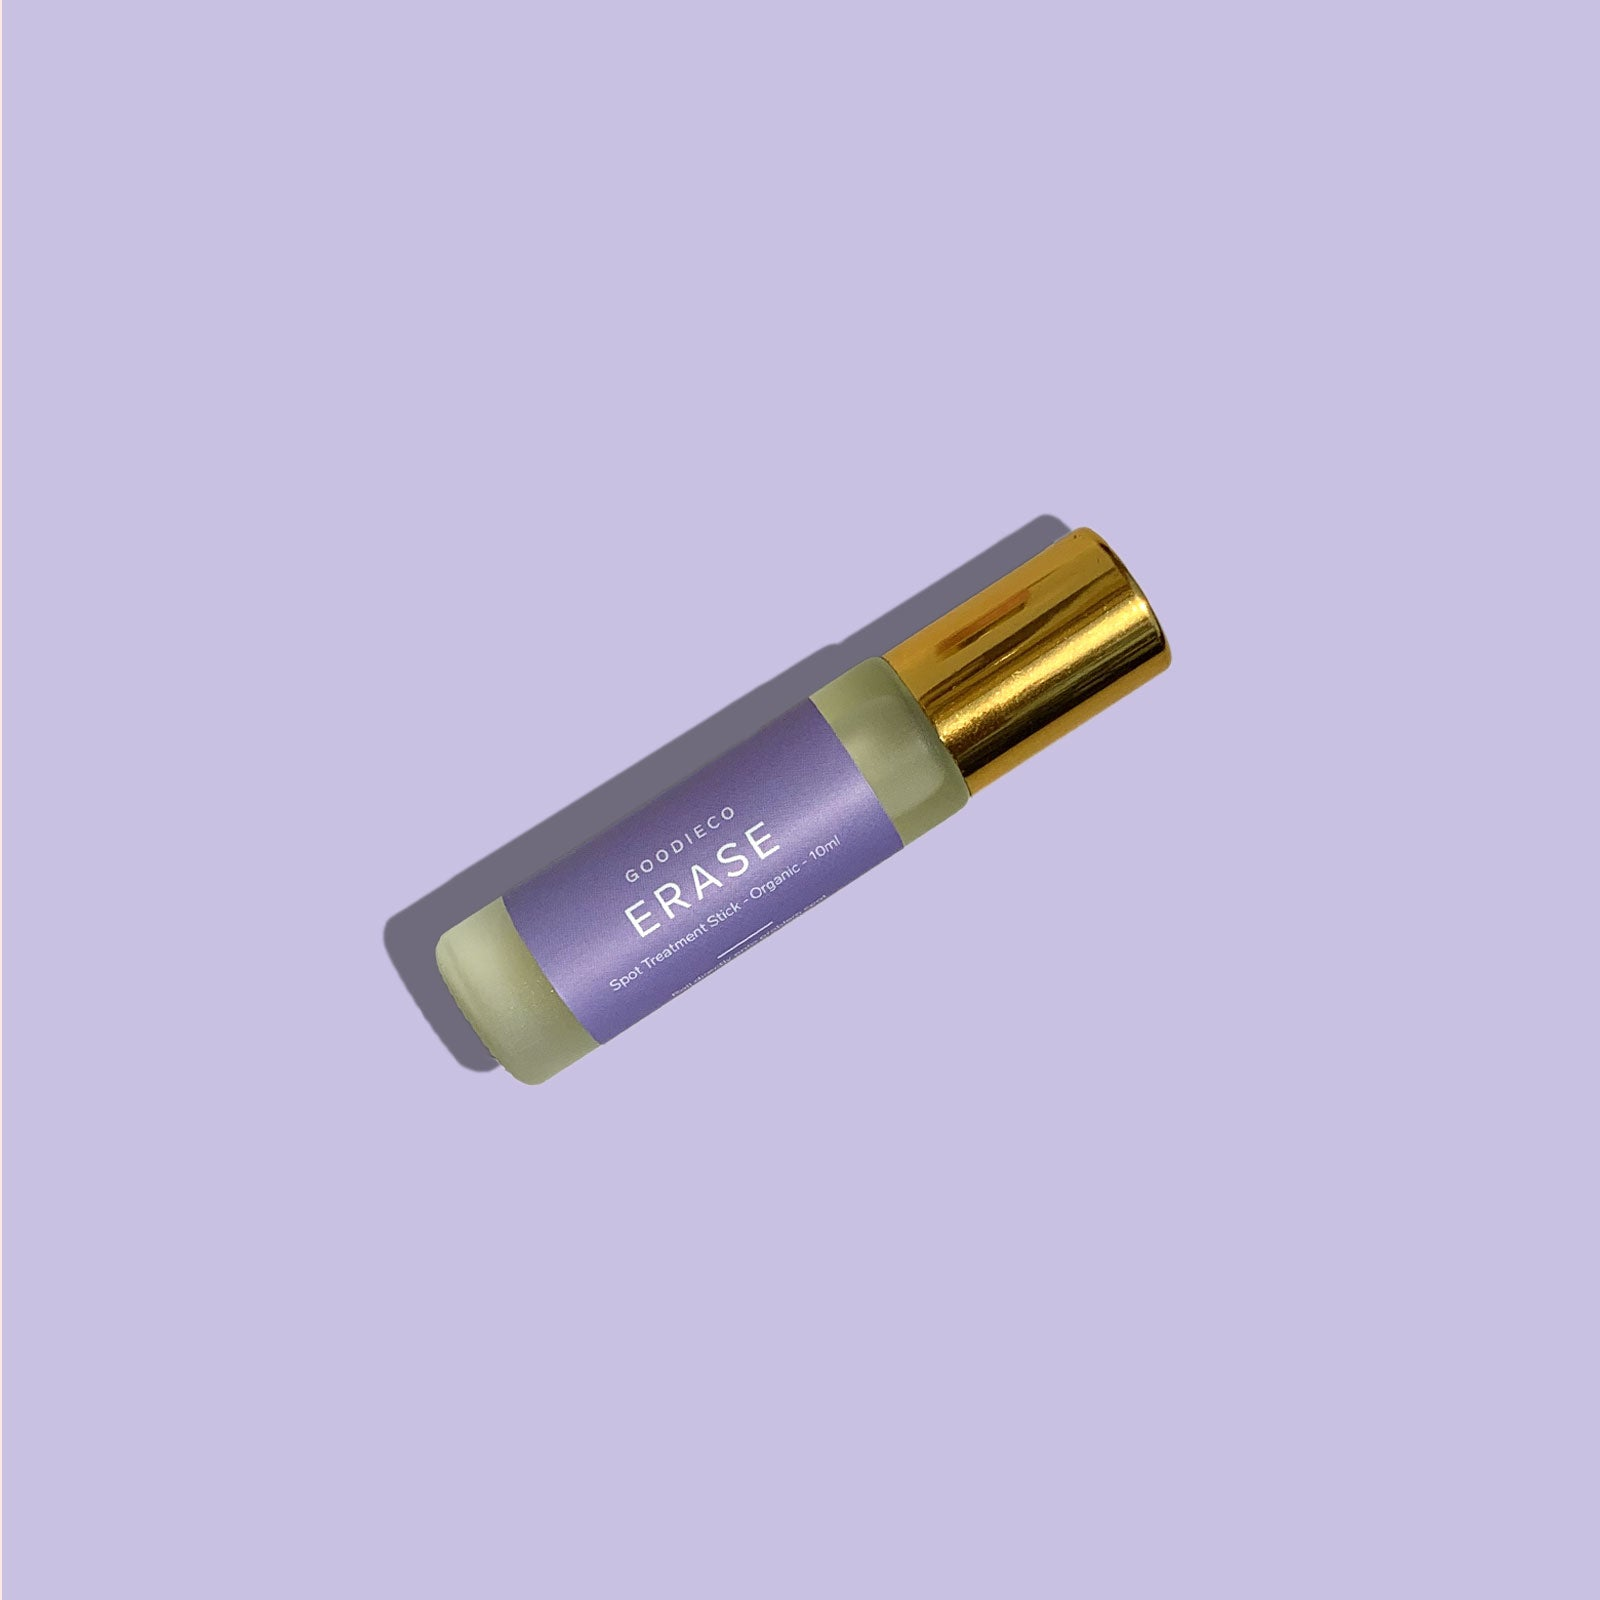 Erase | Spot Treatment Stick